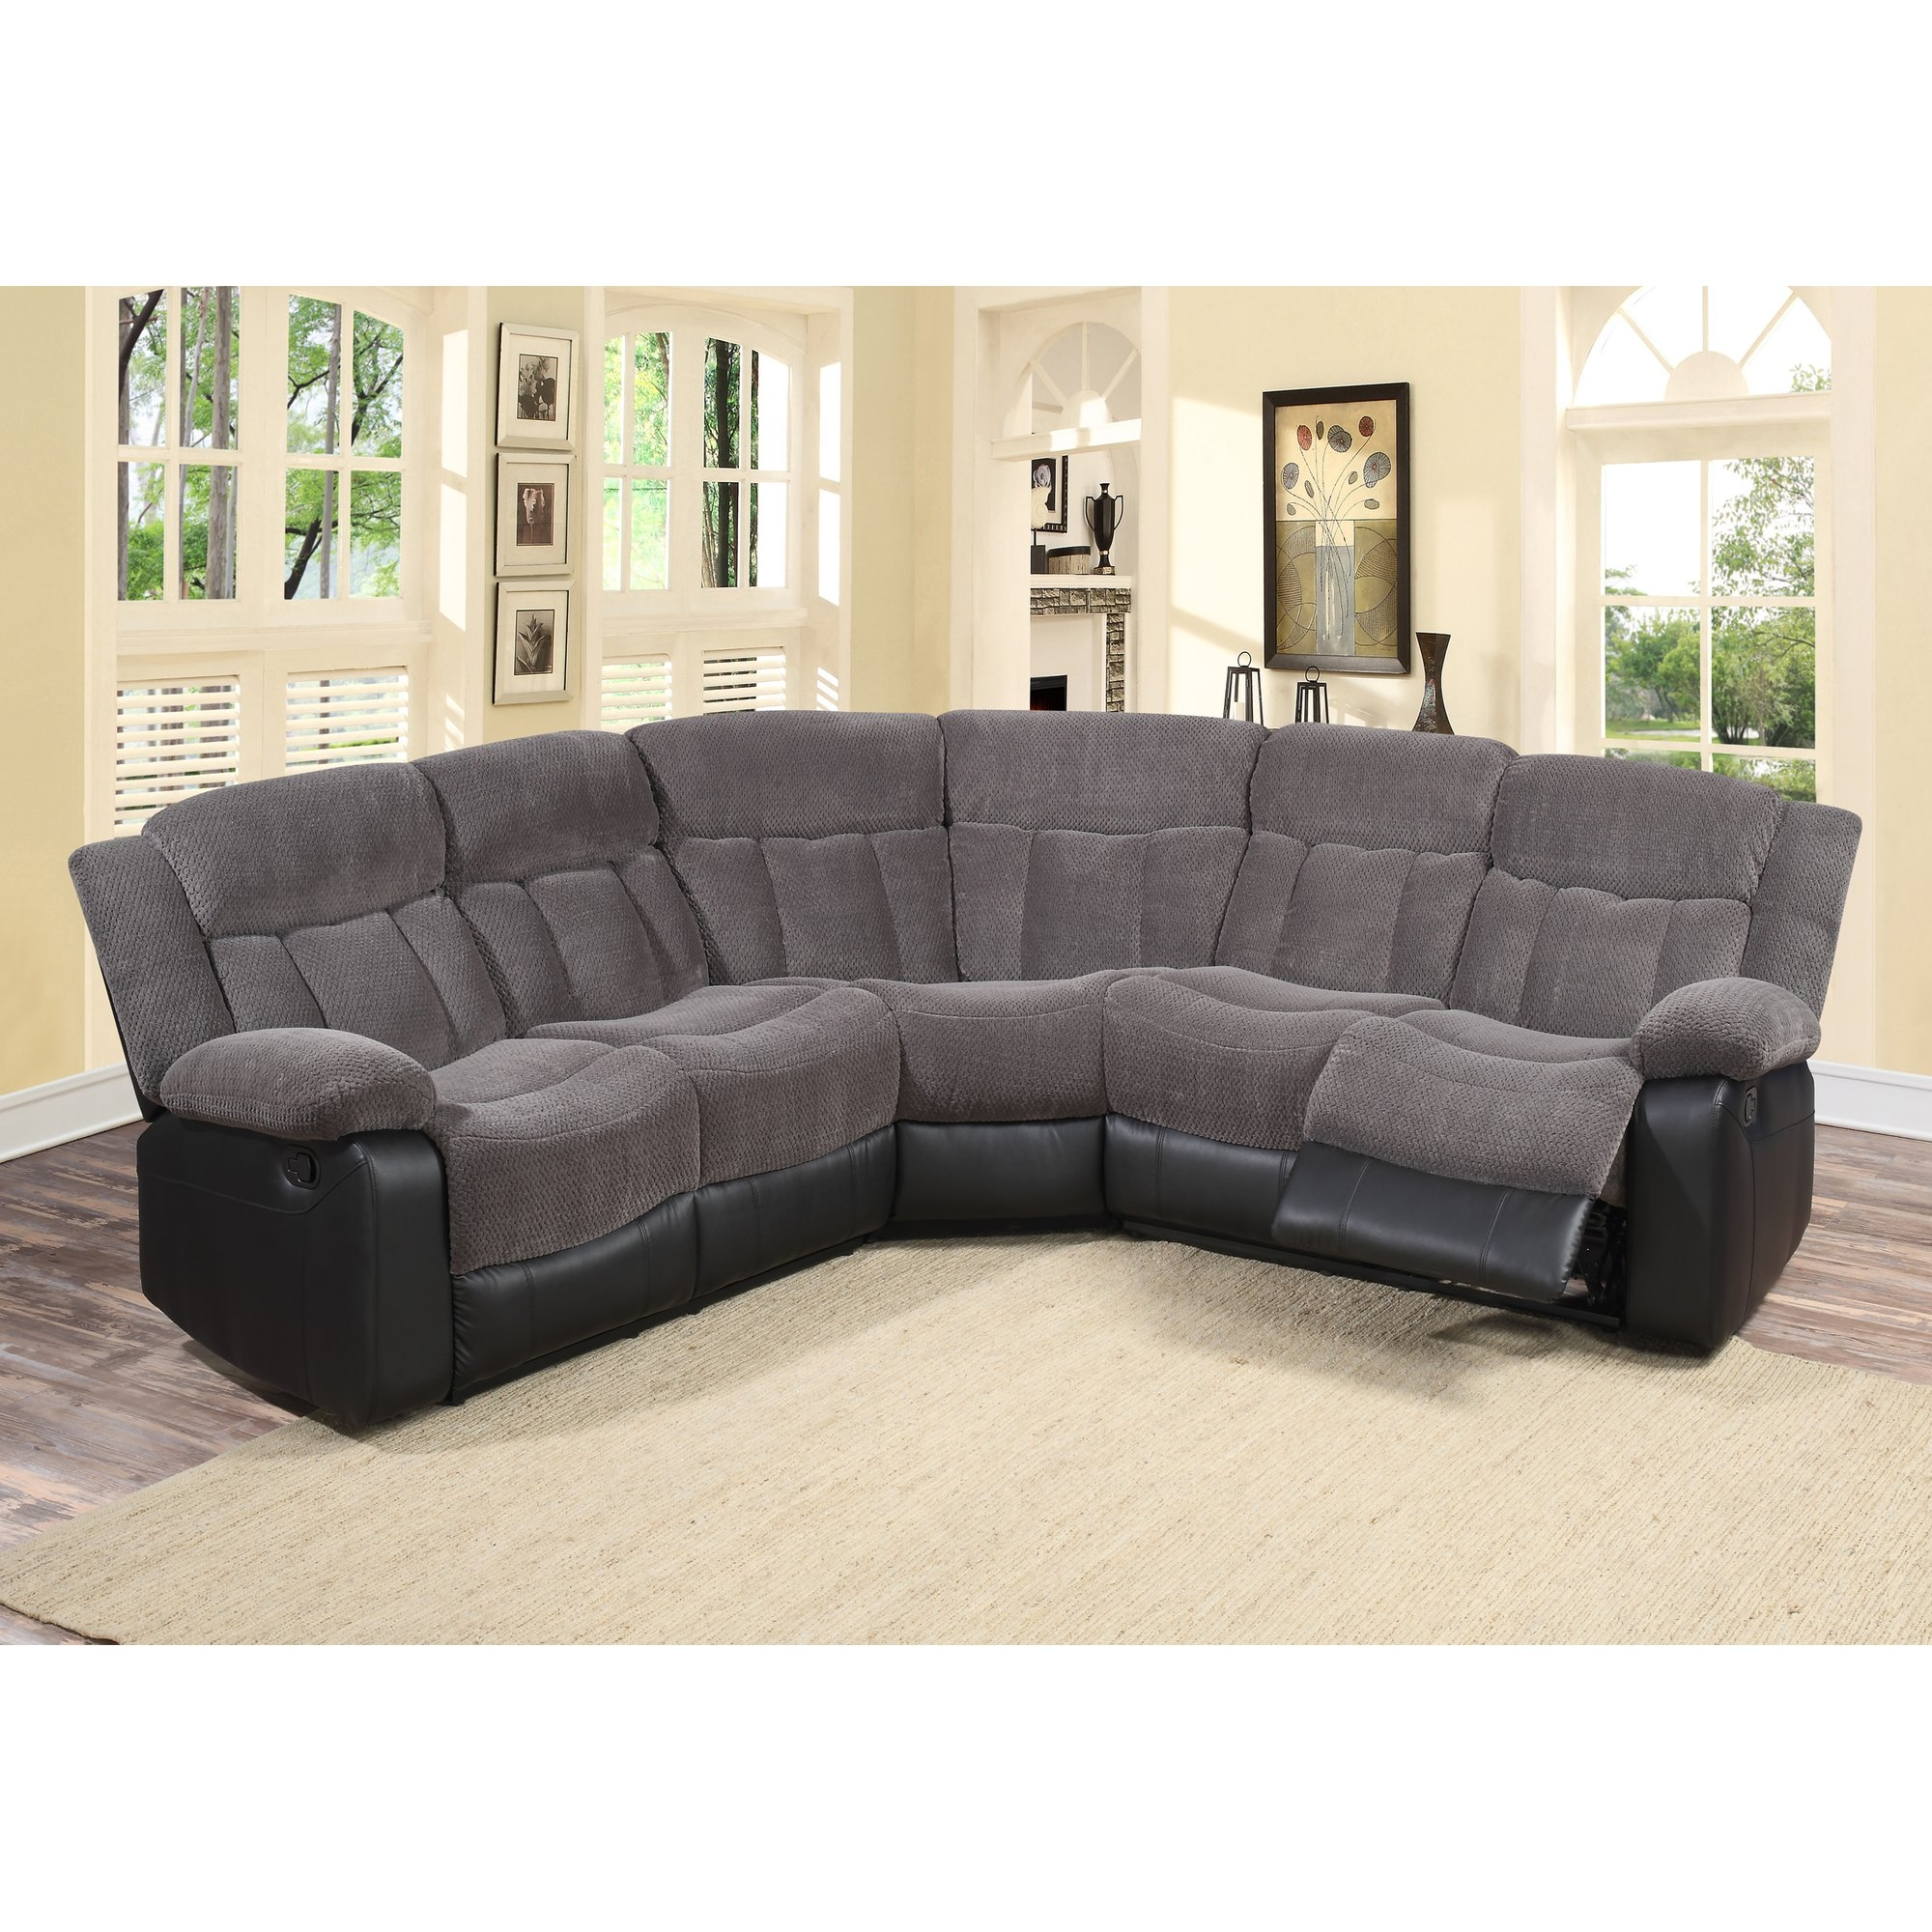 small modular sofa sectionals double loveseat sleeper chair 15 collection of 6 piece sectional | ideas